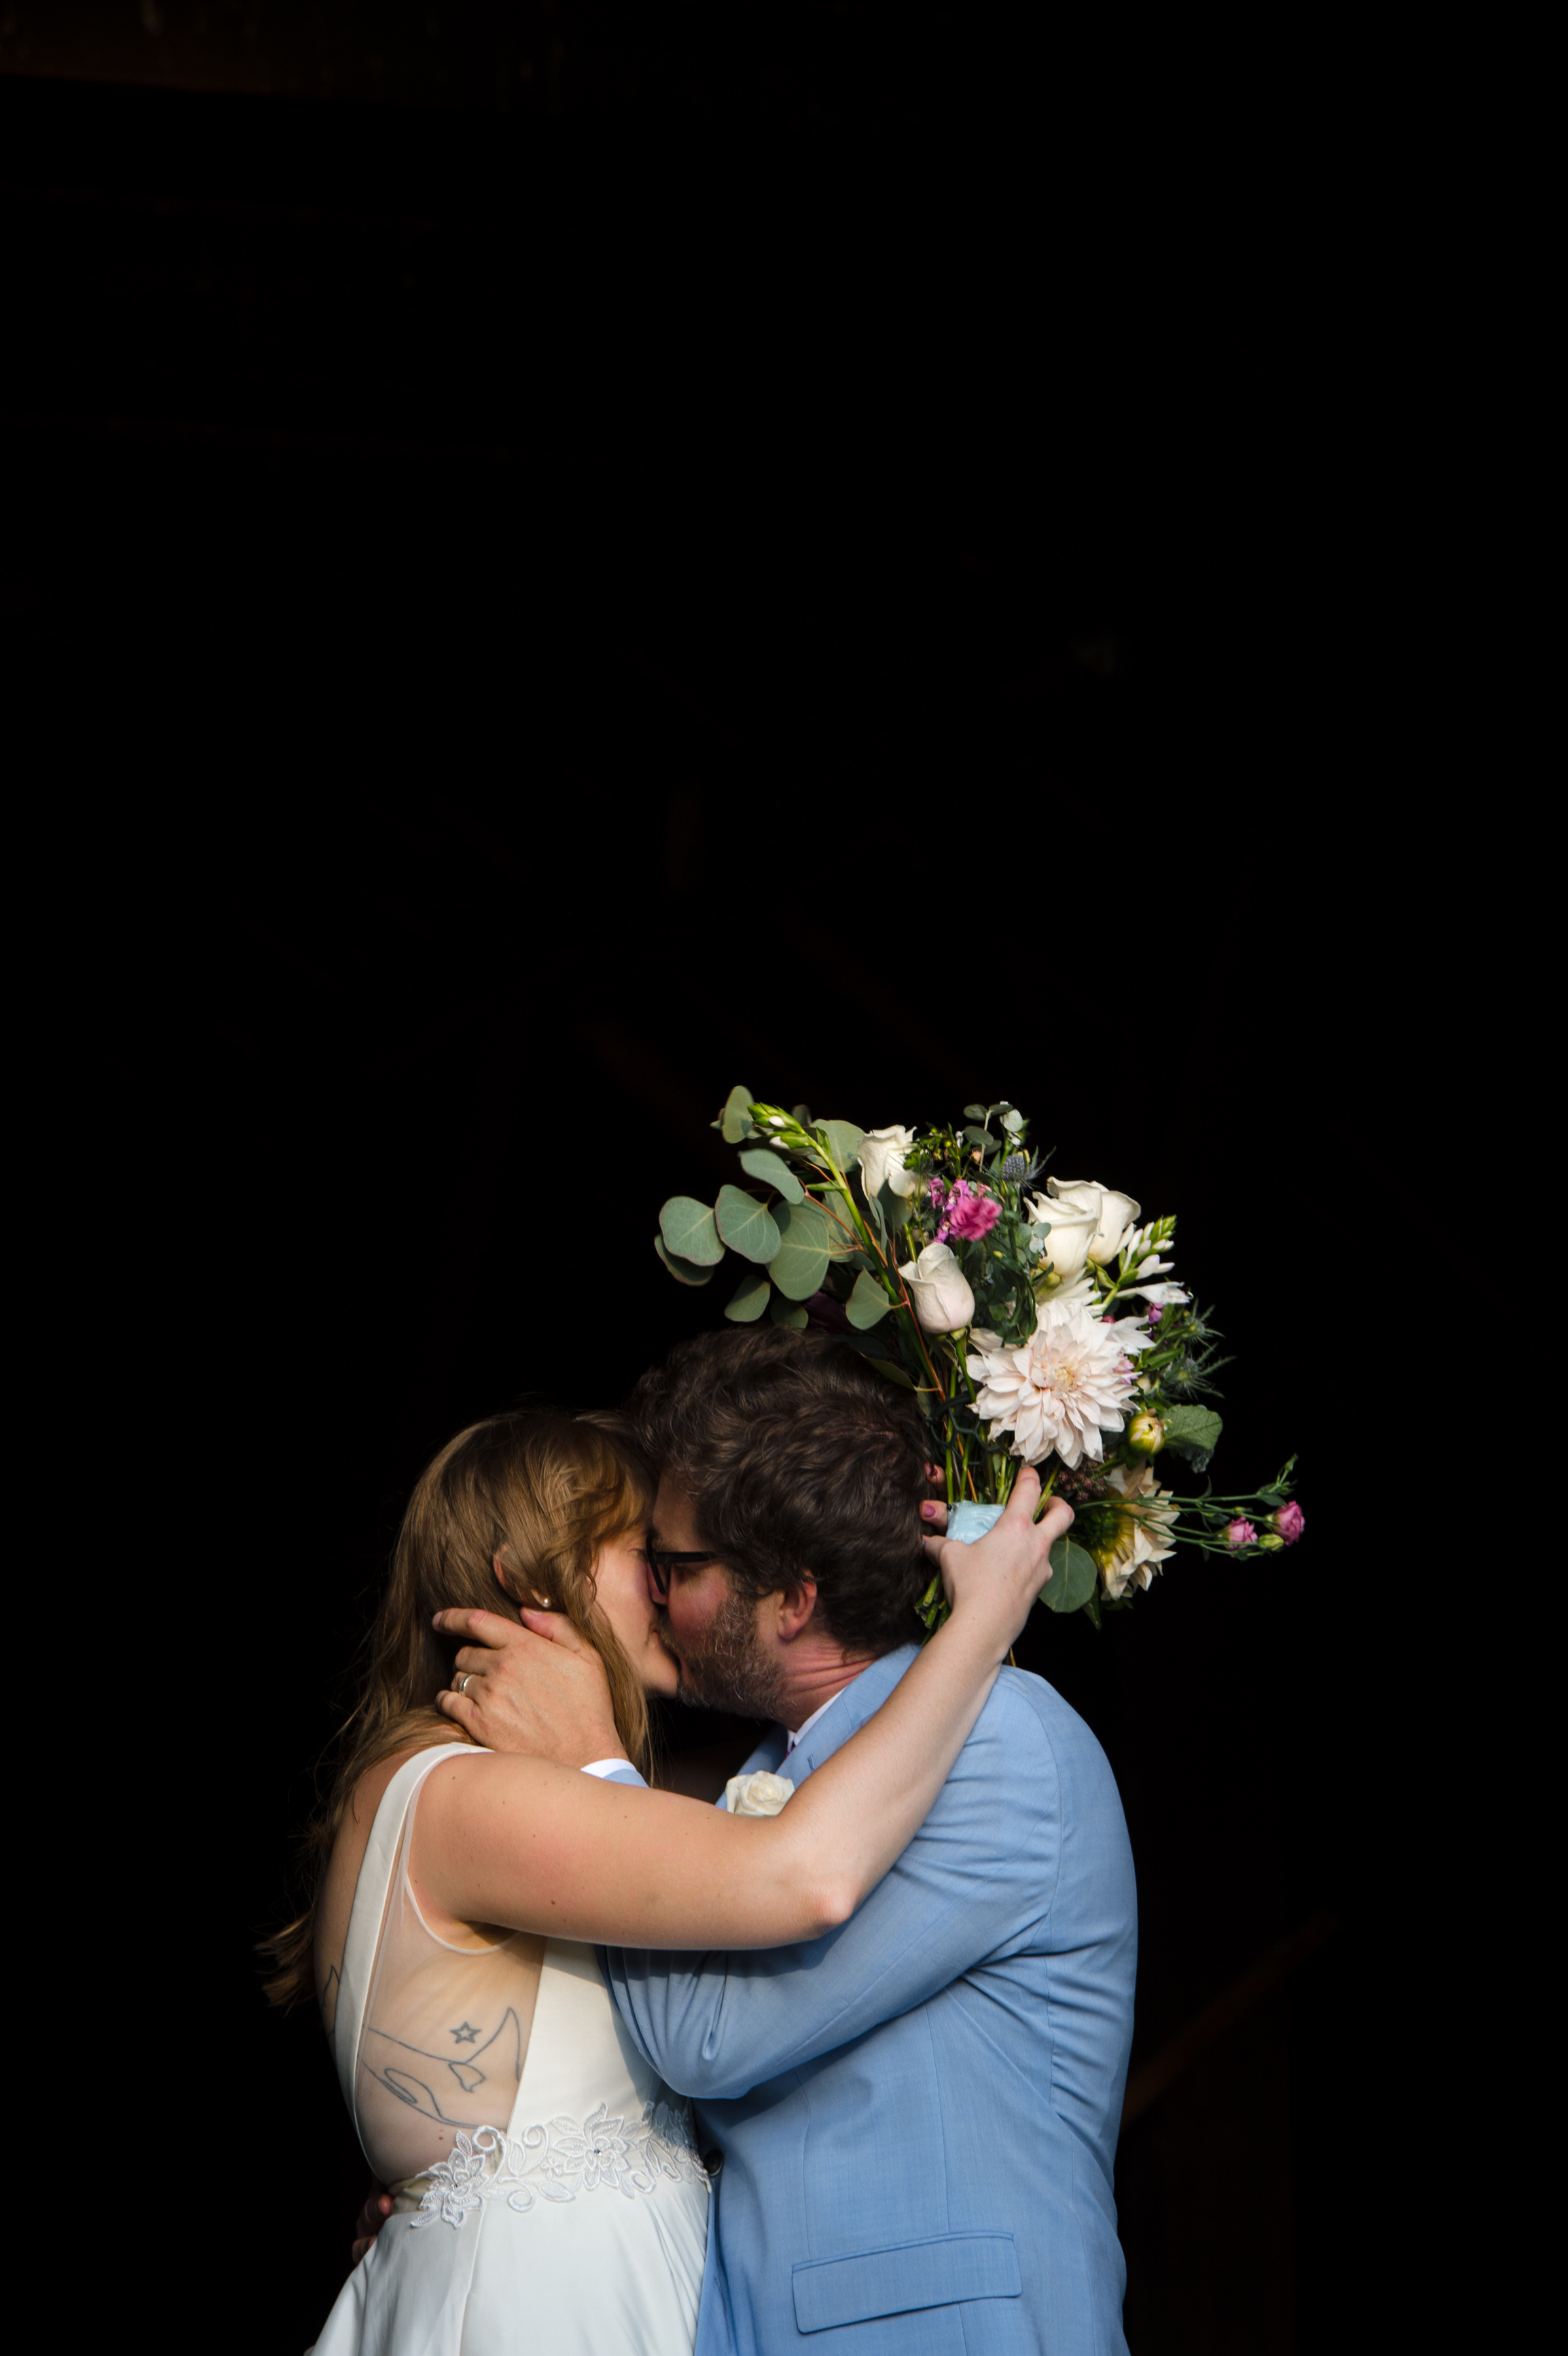 newlywed couple kiss while holding bouquet against black backdrop at Boston wedding Michelle Schapiro Photography